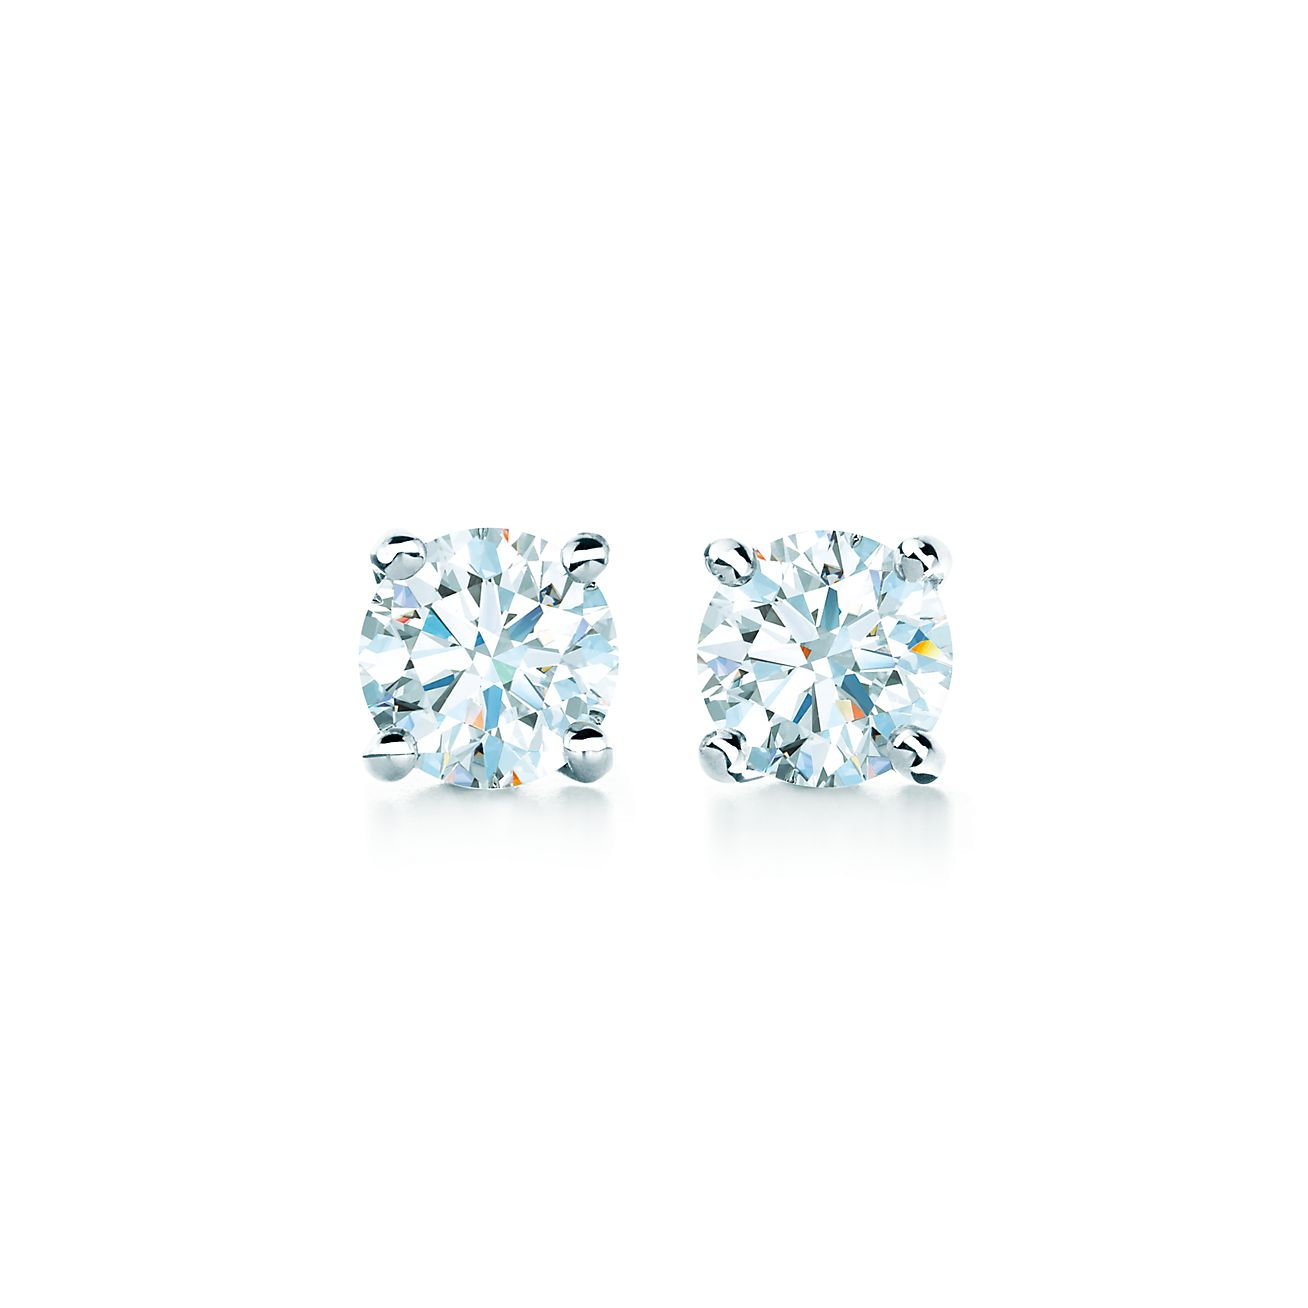 Tiffany solitaire diamond earrings in platinum.